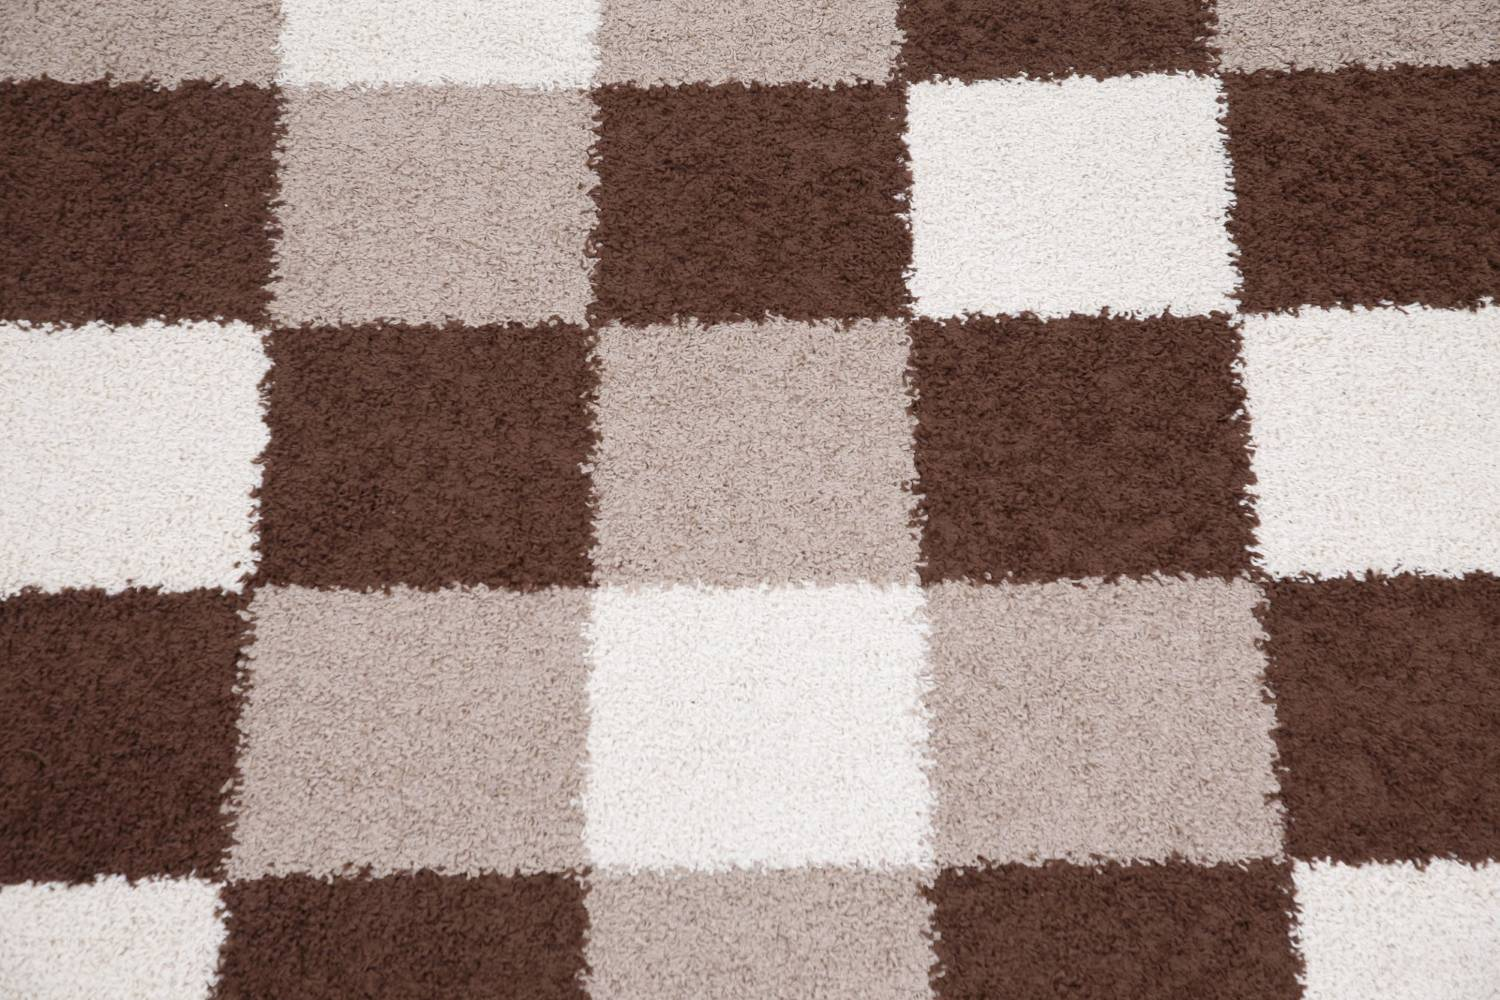 Checked Shaggy Turkish Oriental Rugs image 5